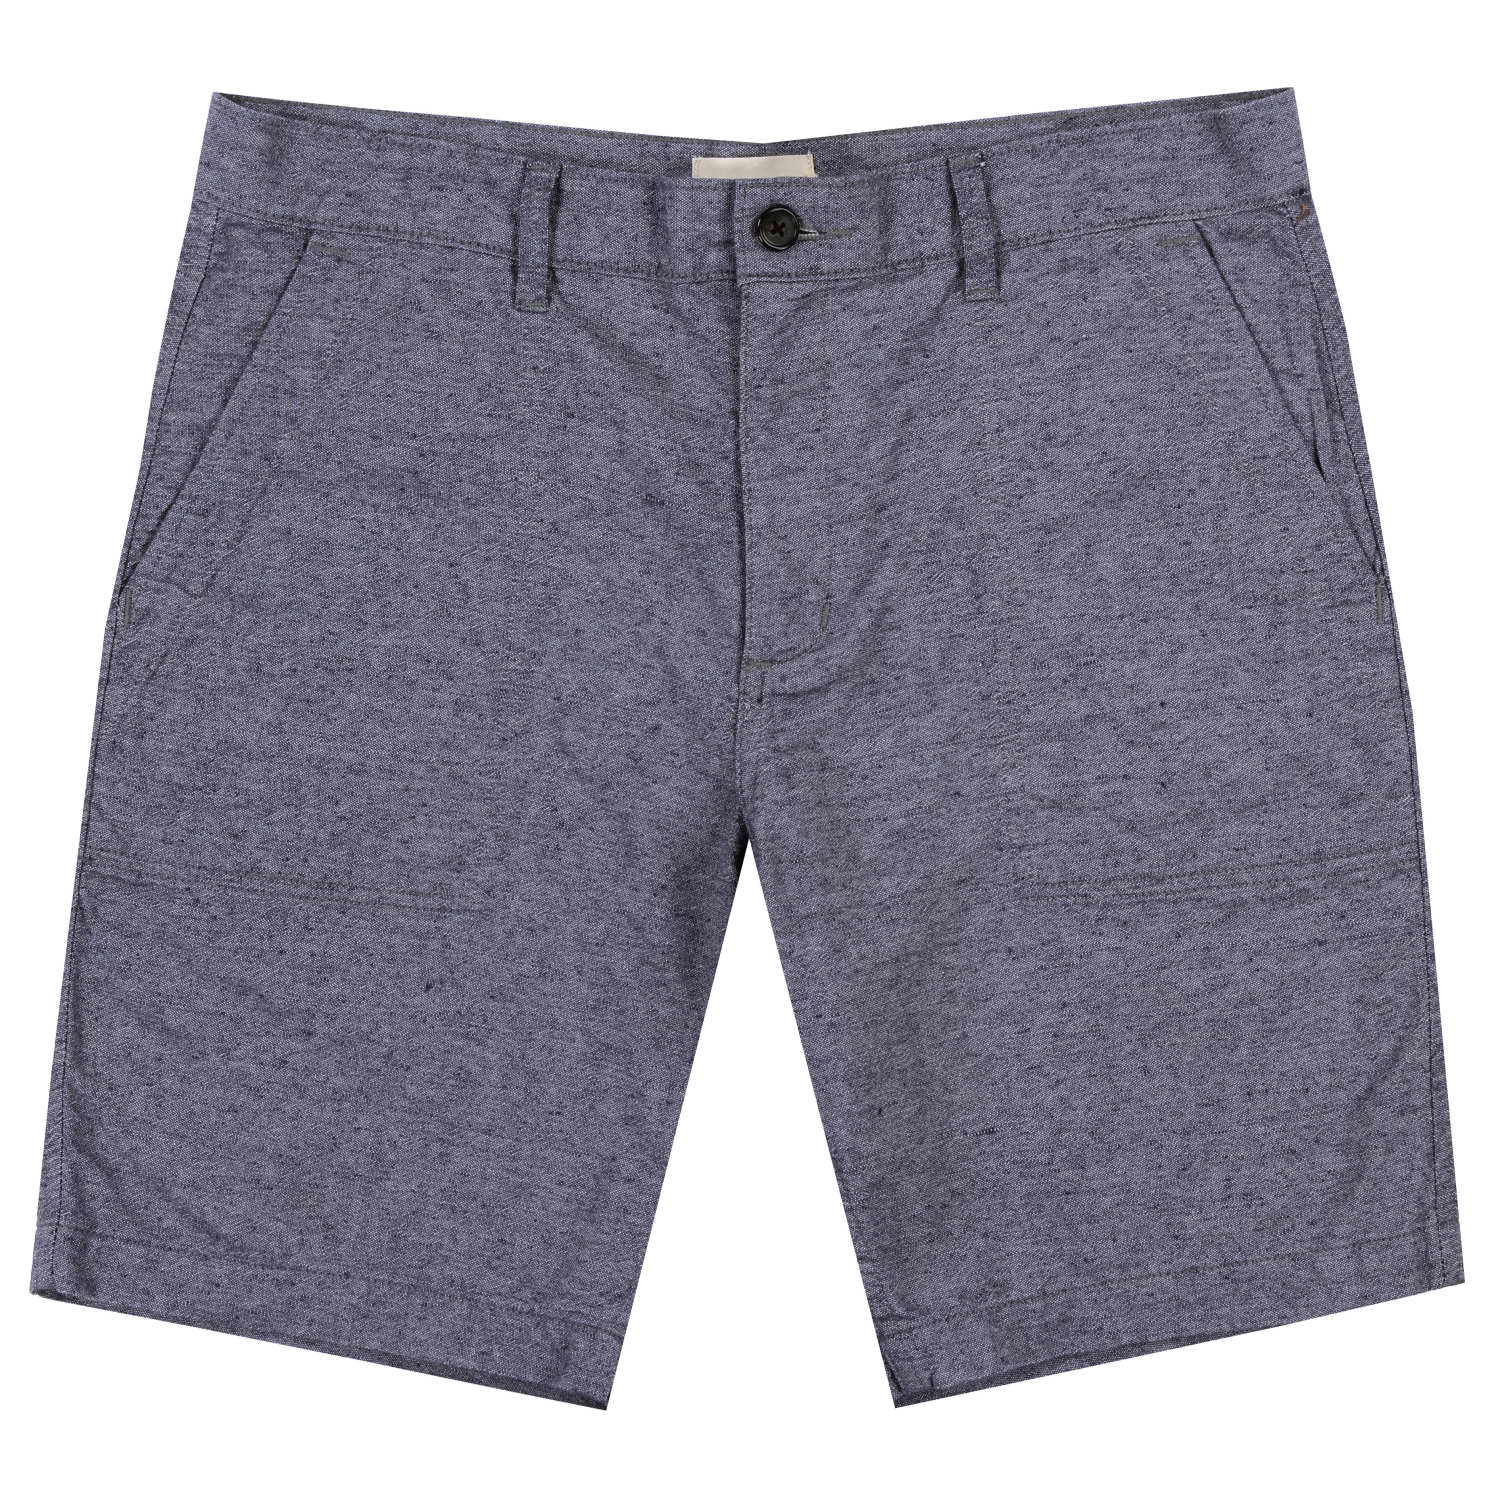 The Trail Short